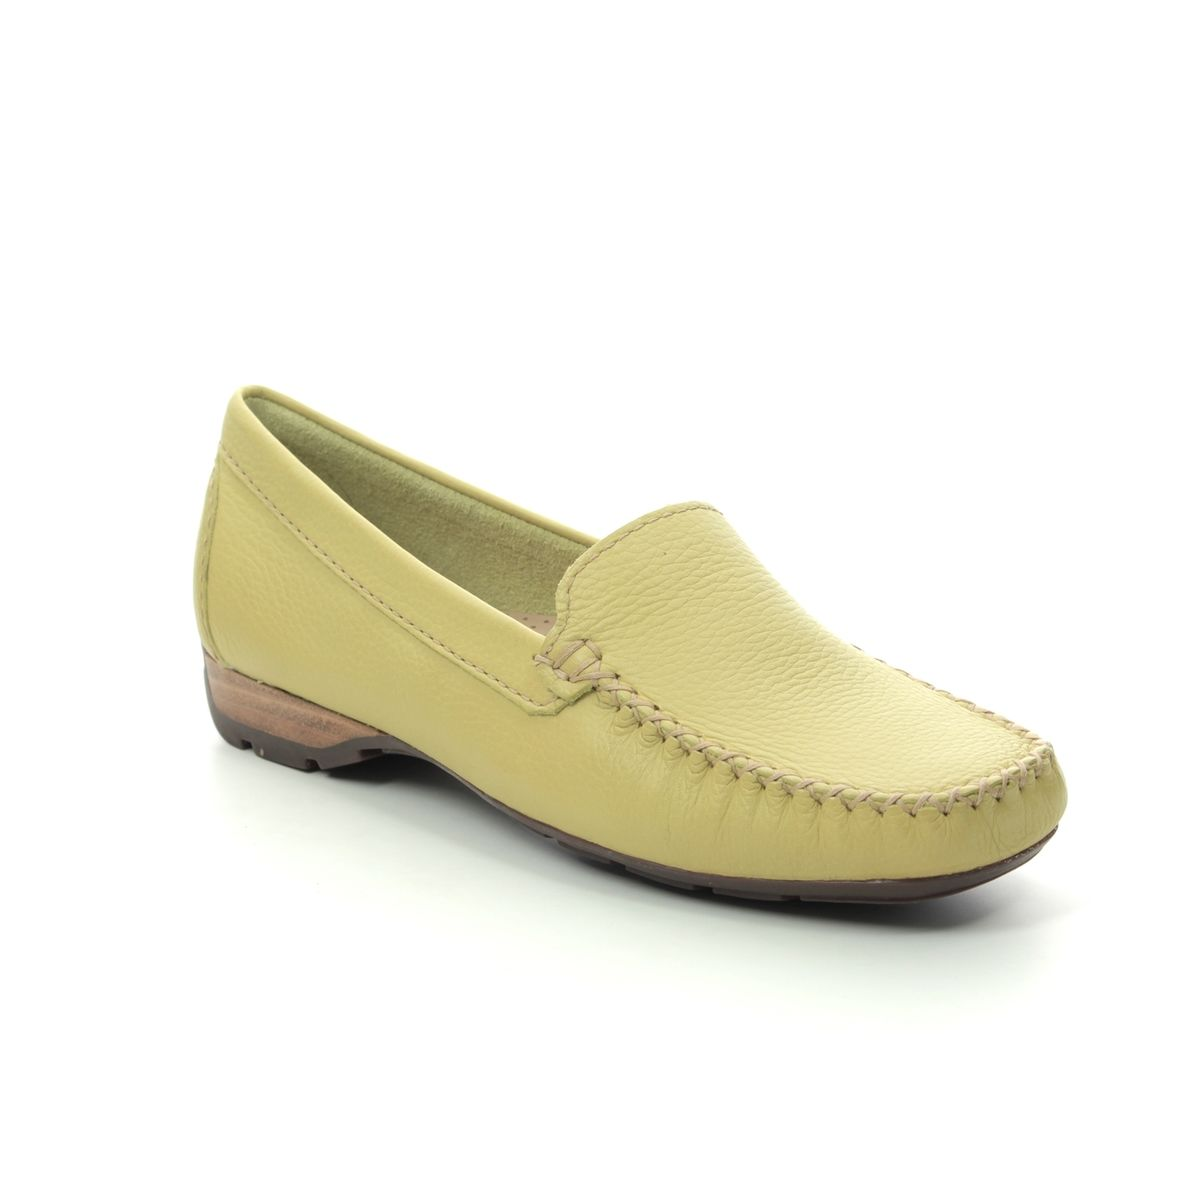 Begg Shoes Sunday Wide Fit 40539-08